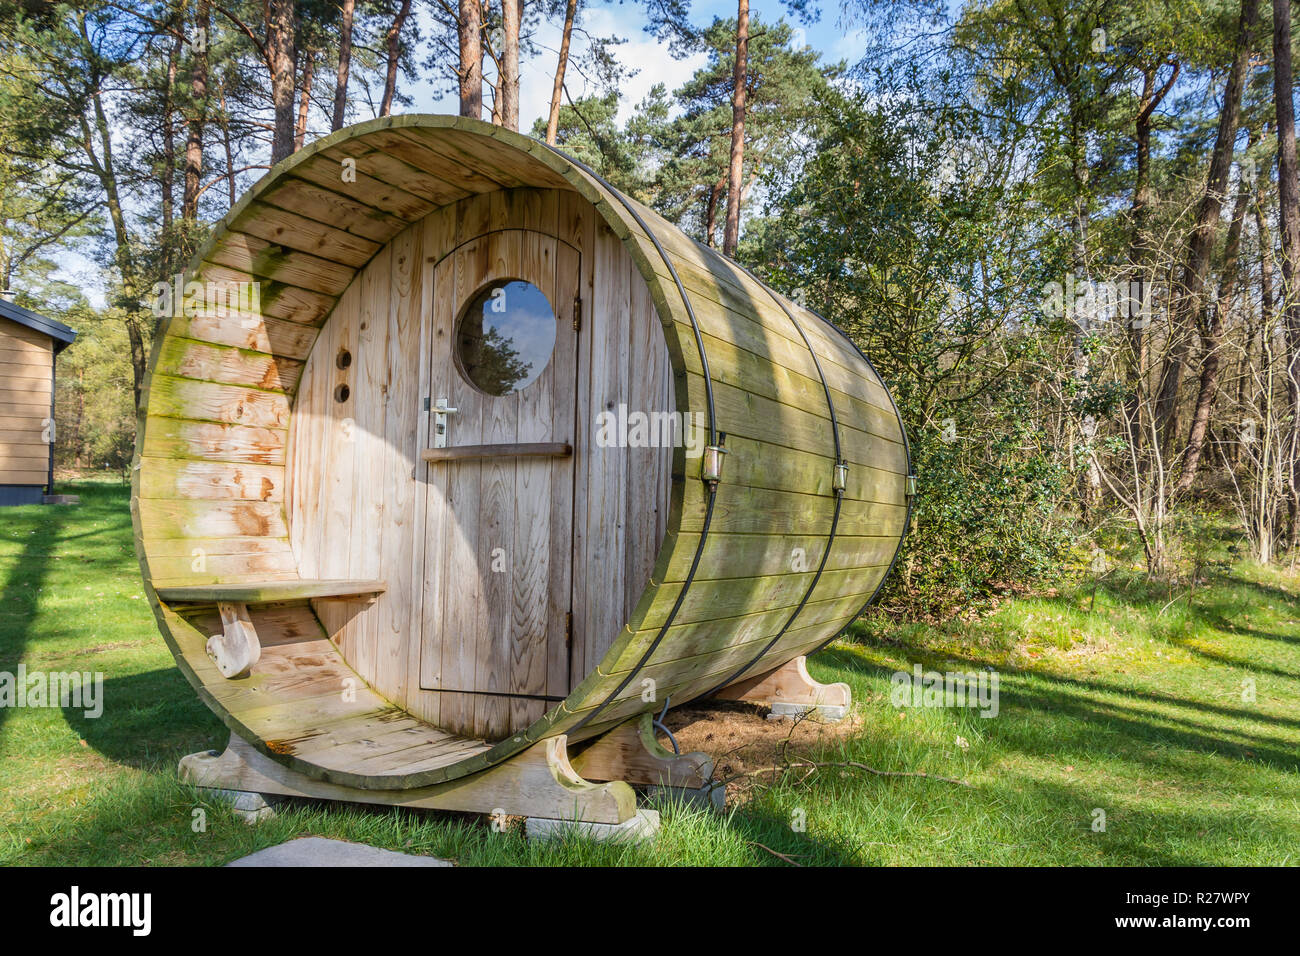 Wooden holiaday home with sauna - Stock Image